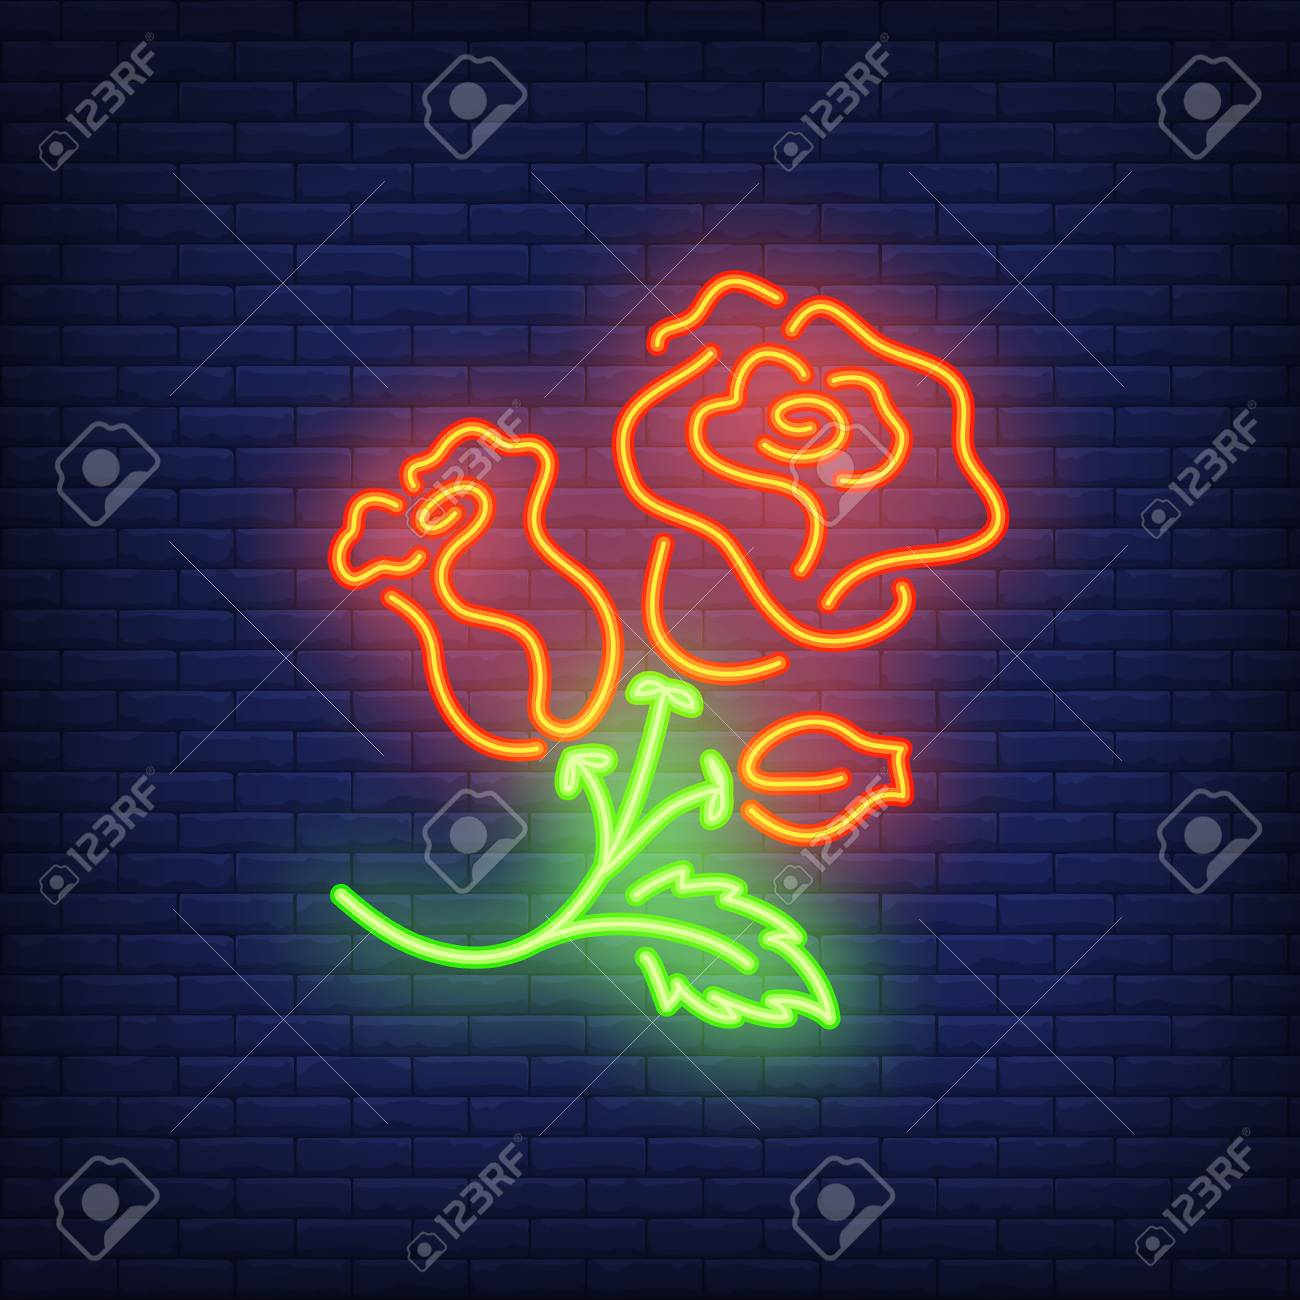 Rose Bush Neon Sign Element Flower Concept For Night Bright